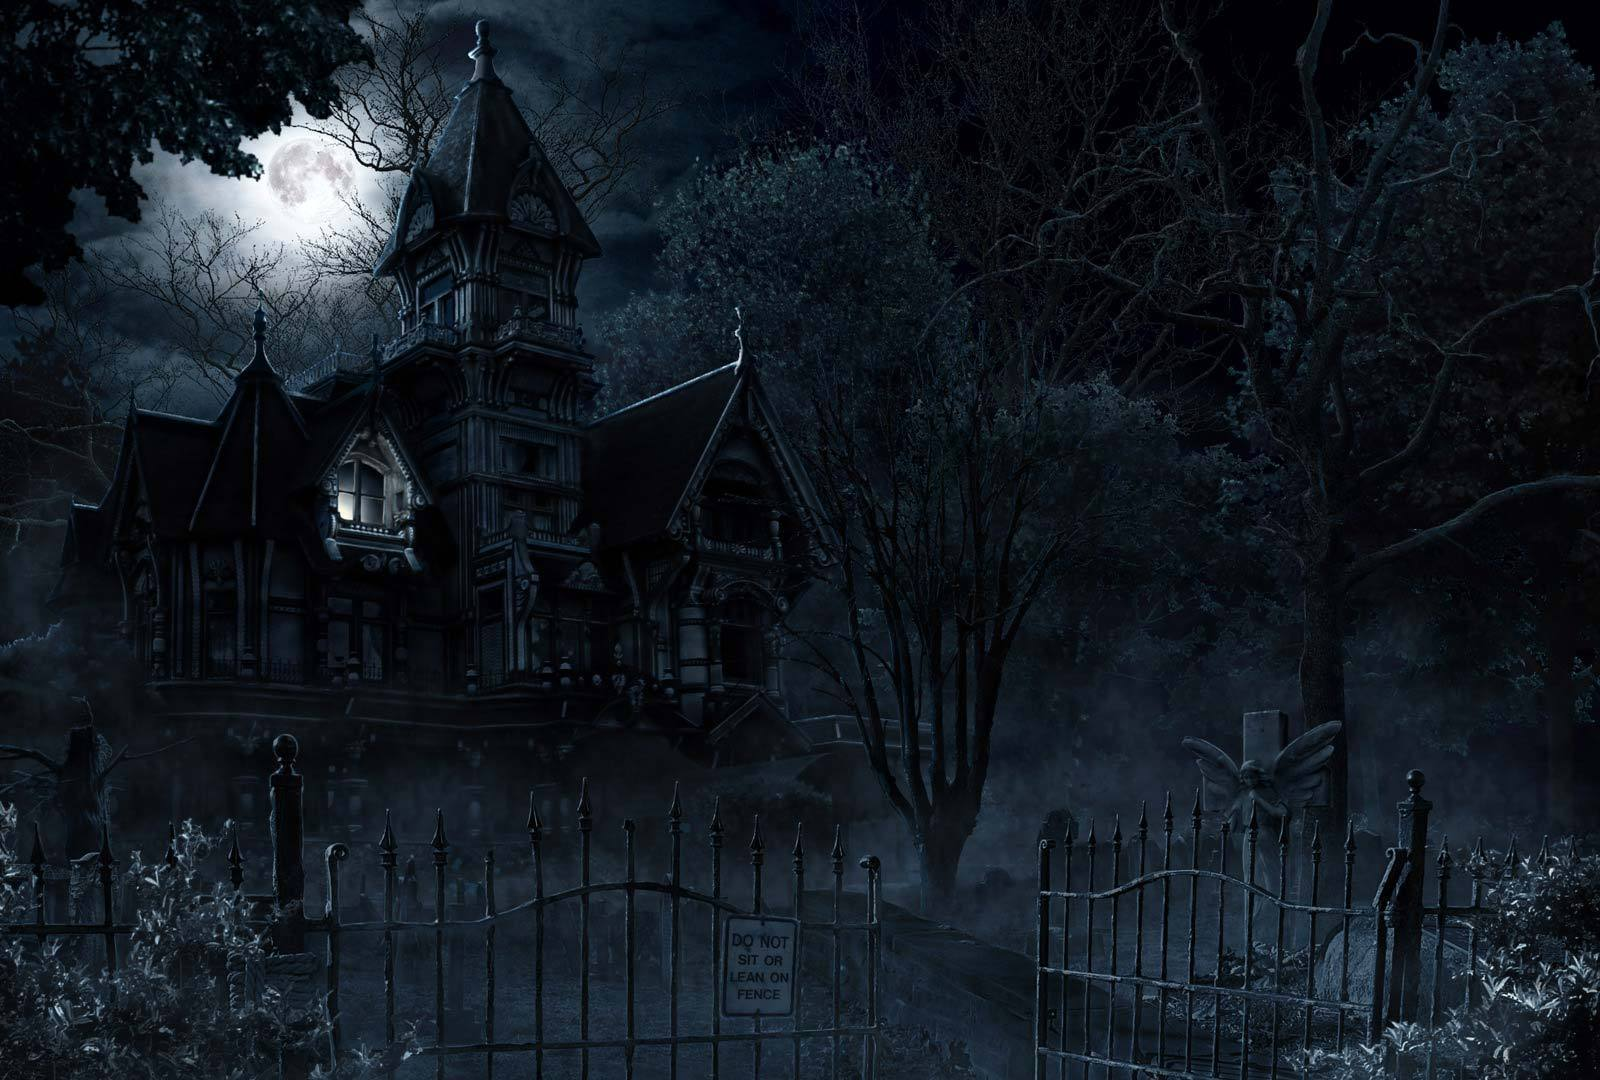 Haunted castle after dark photo 21838089 fanpop for Creepy gothic pictures